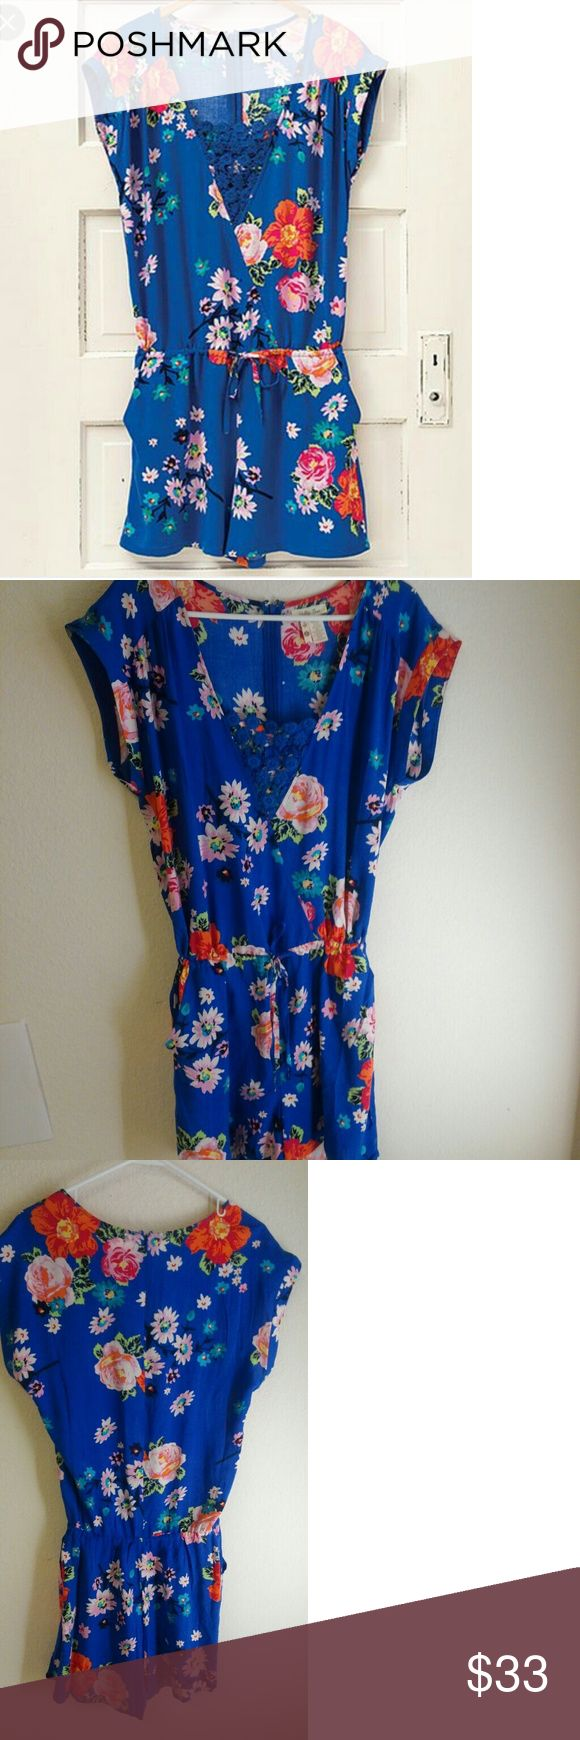 Matilda Jane Hello Lovely Out and about Romper Great shade of blue with bright flower print. Gorgeous details at the neck line. Zippered back. Excellent condition Matilda Jane Other